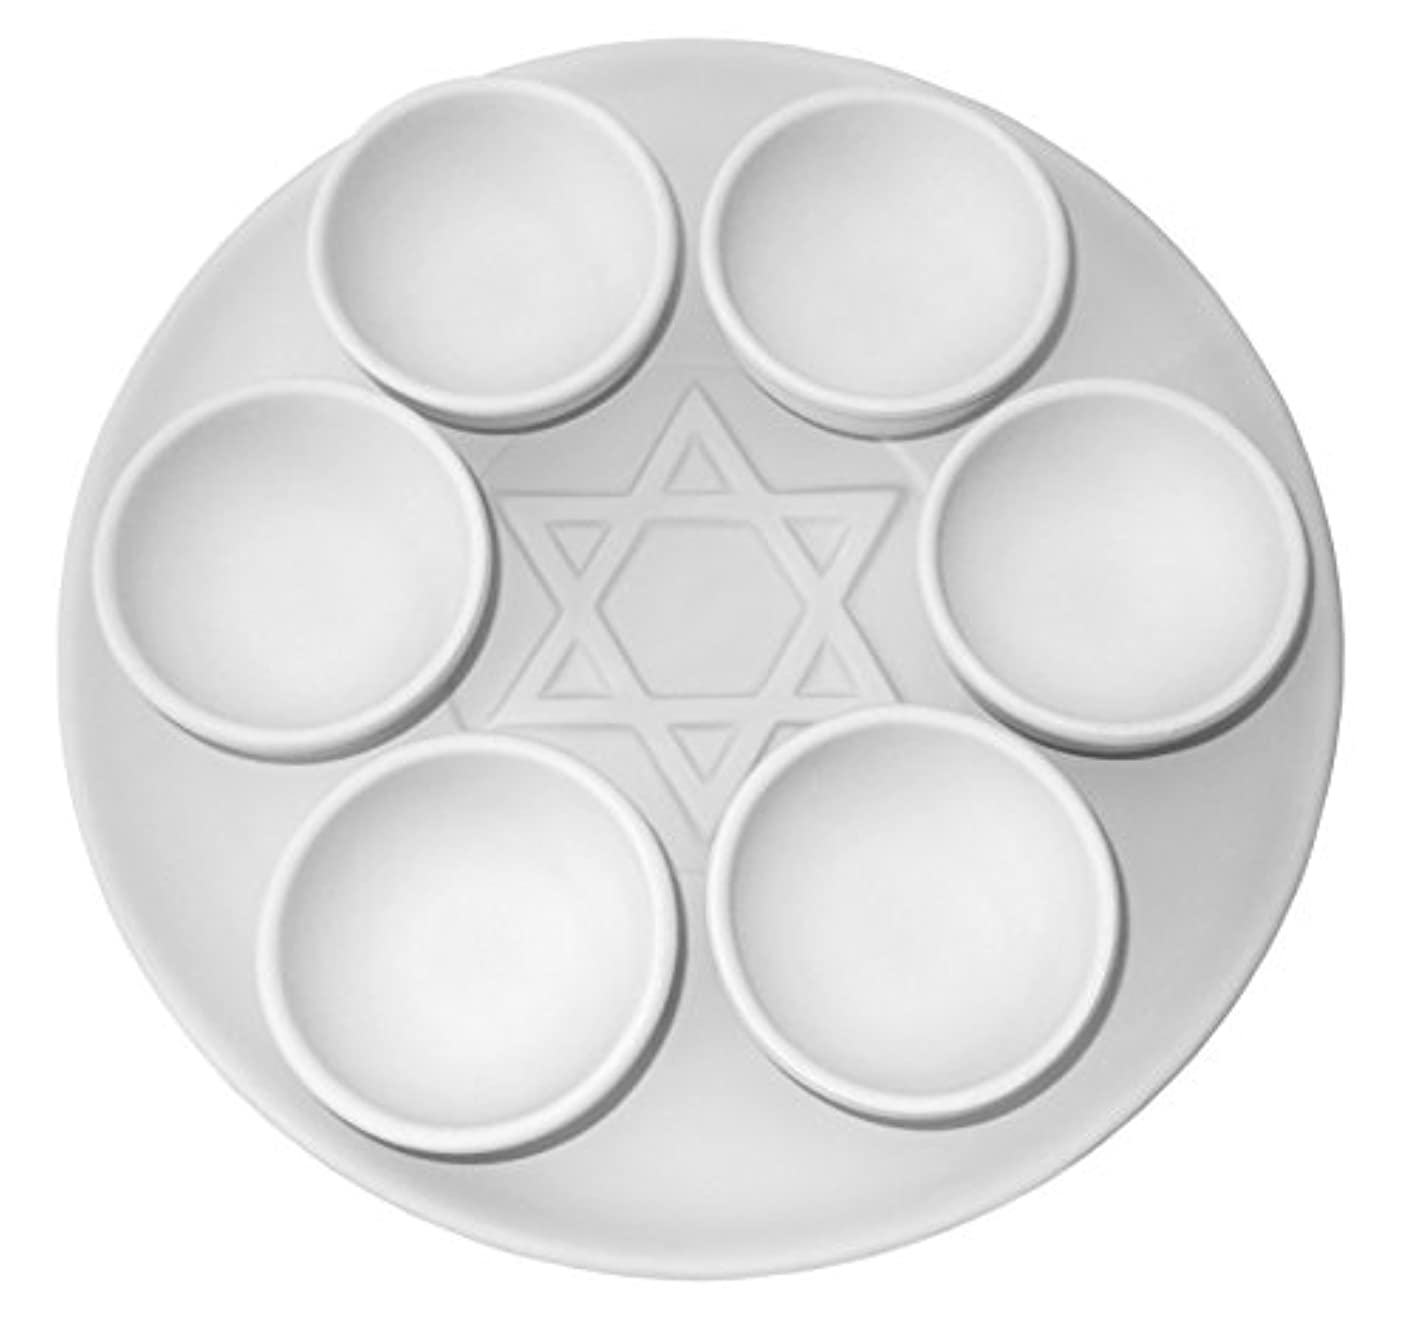 Traditional Seder Plate - Set of 7 Pieces - Paint Your Own Ceramic Keepsake